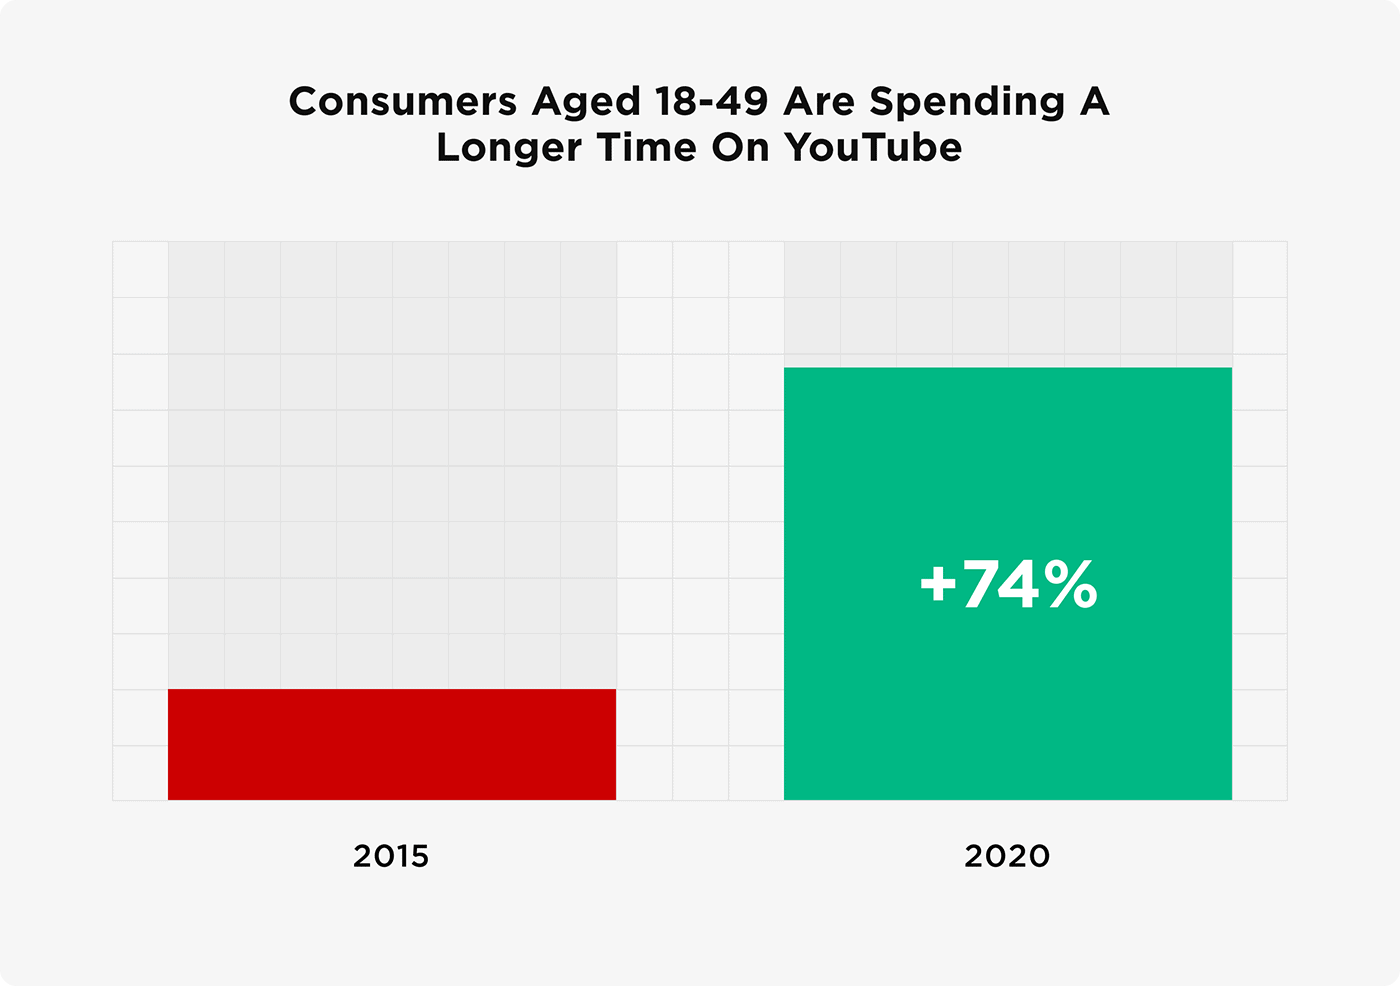 Consumers aged 18-49 are spending a longer time on YouTube